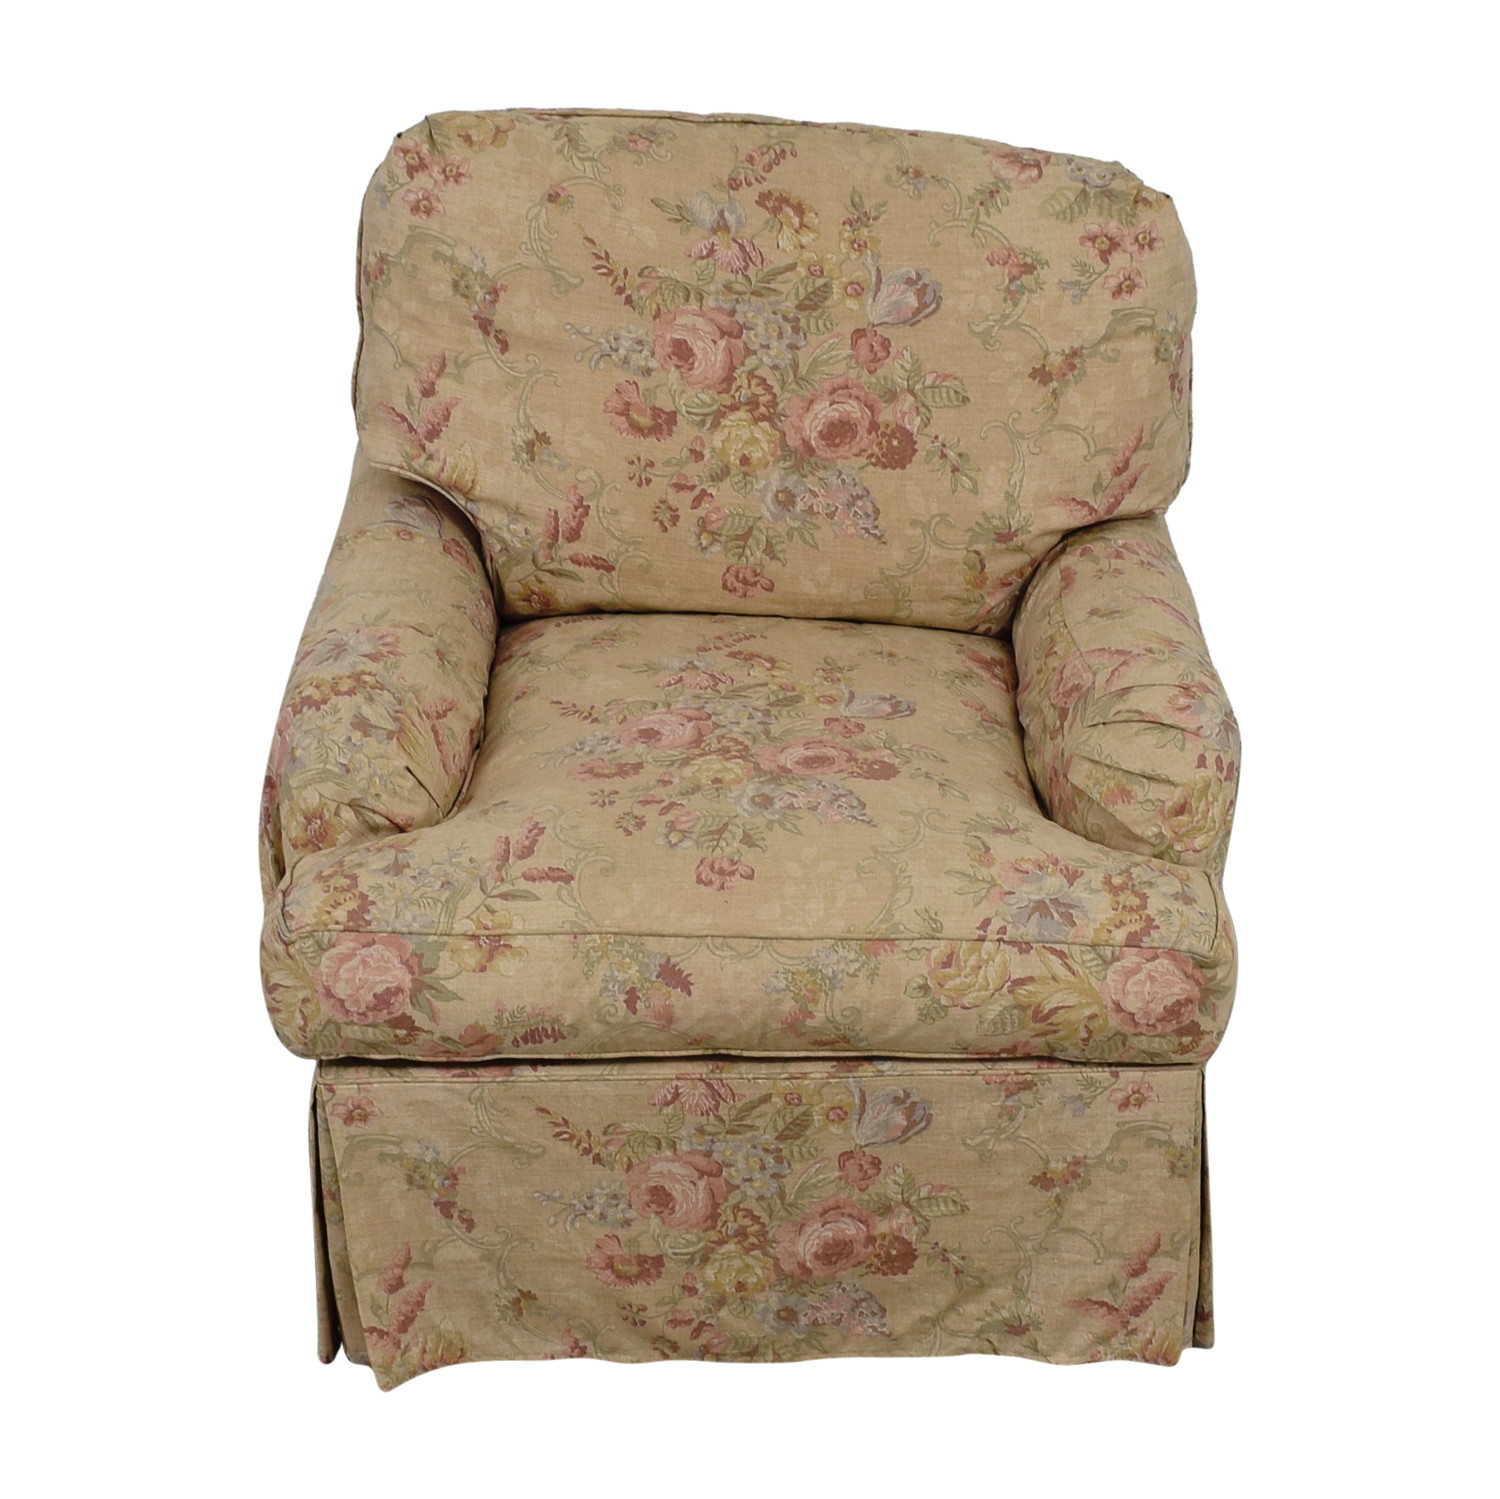 Domain Domain Beige and Pink Floral Accent Chair on sale